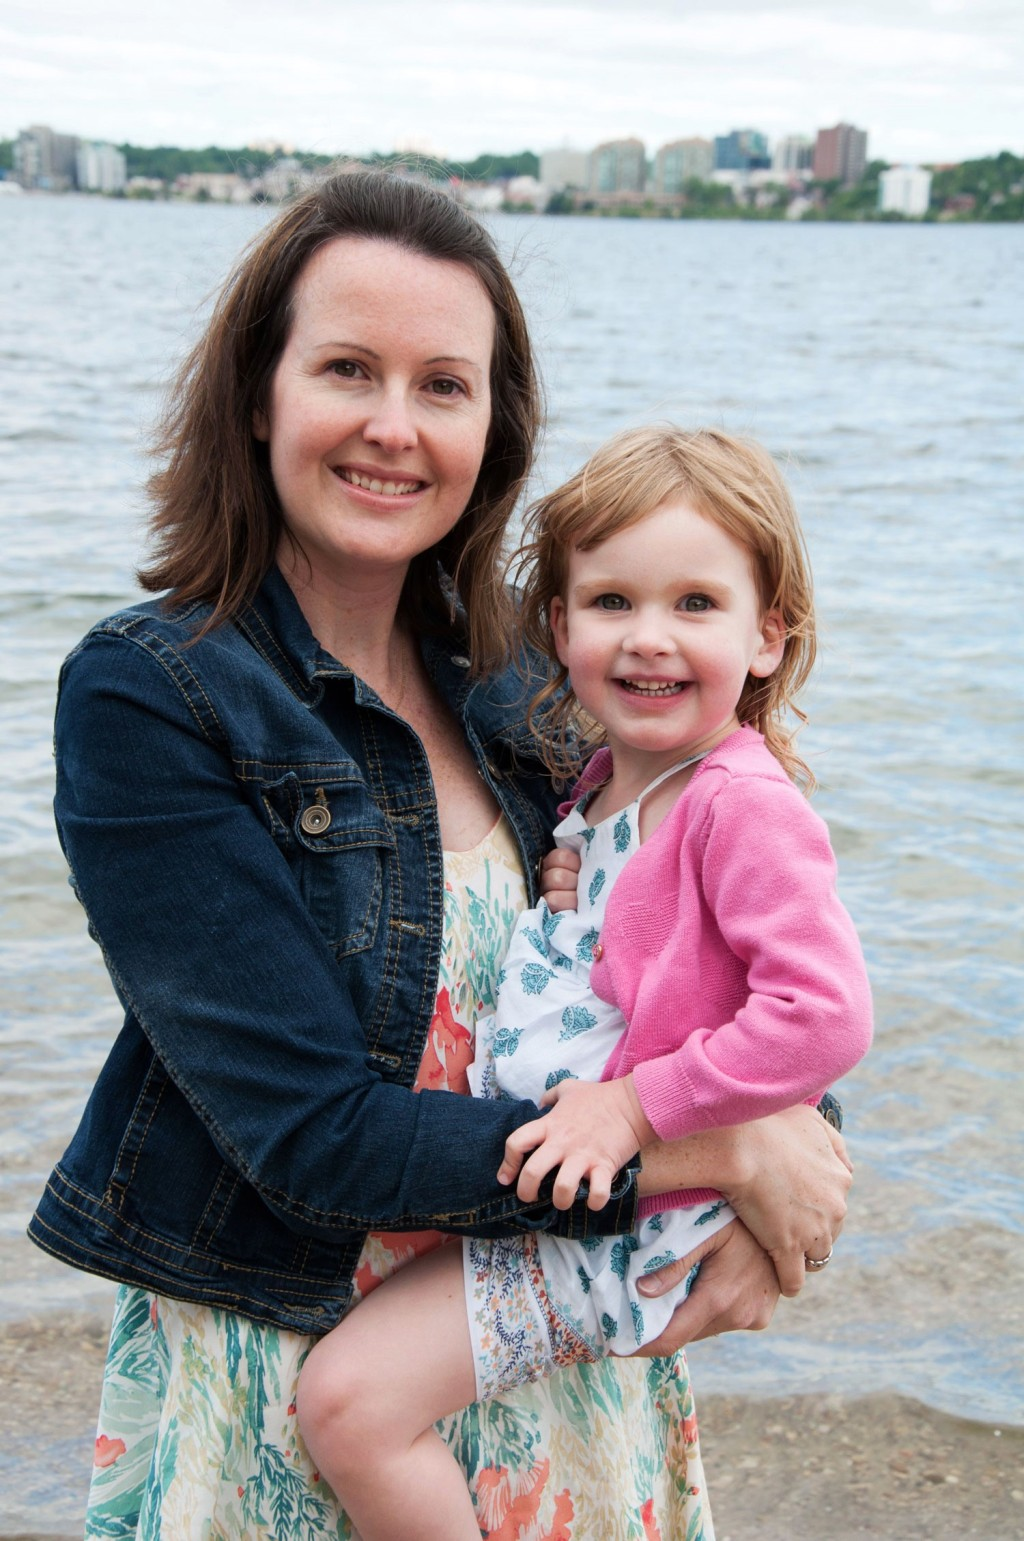 woman in jean jacket and dress, dark hair, holding her young daughter in pink sweater and dress, lake behind them